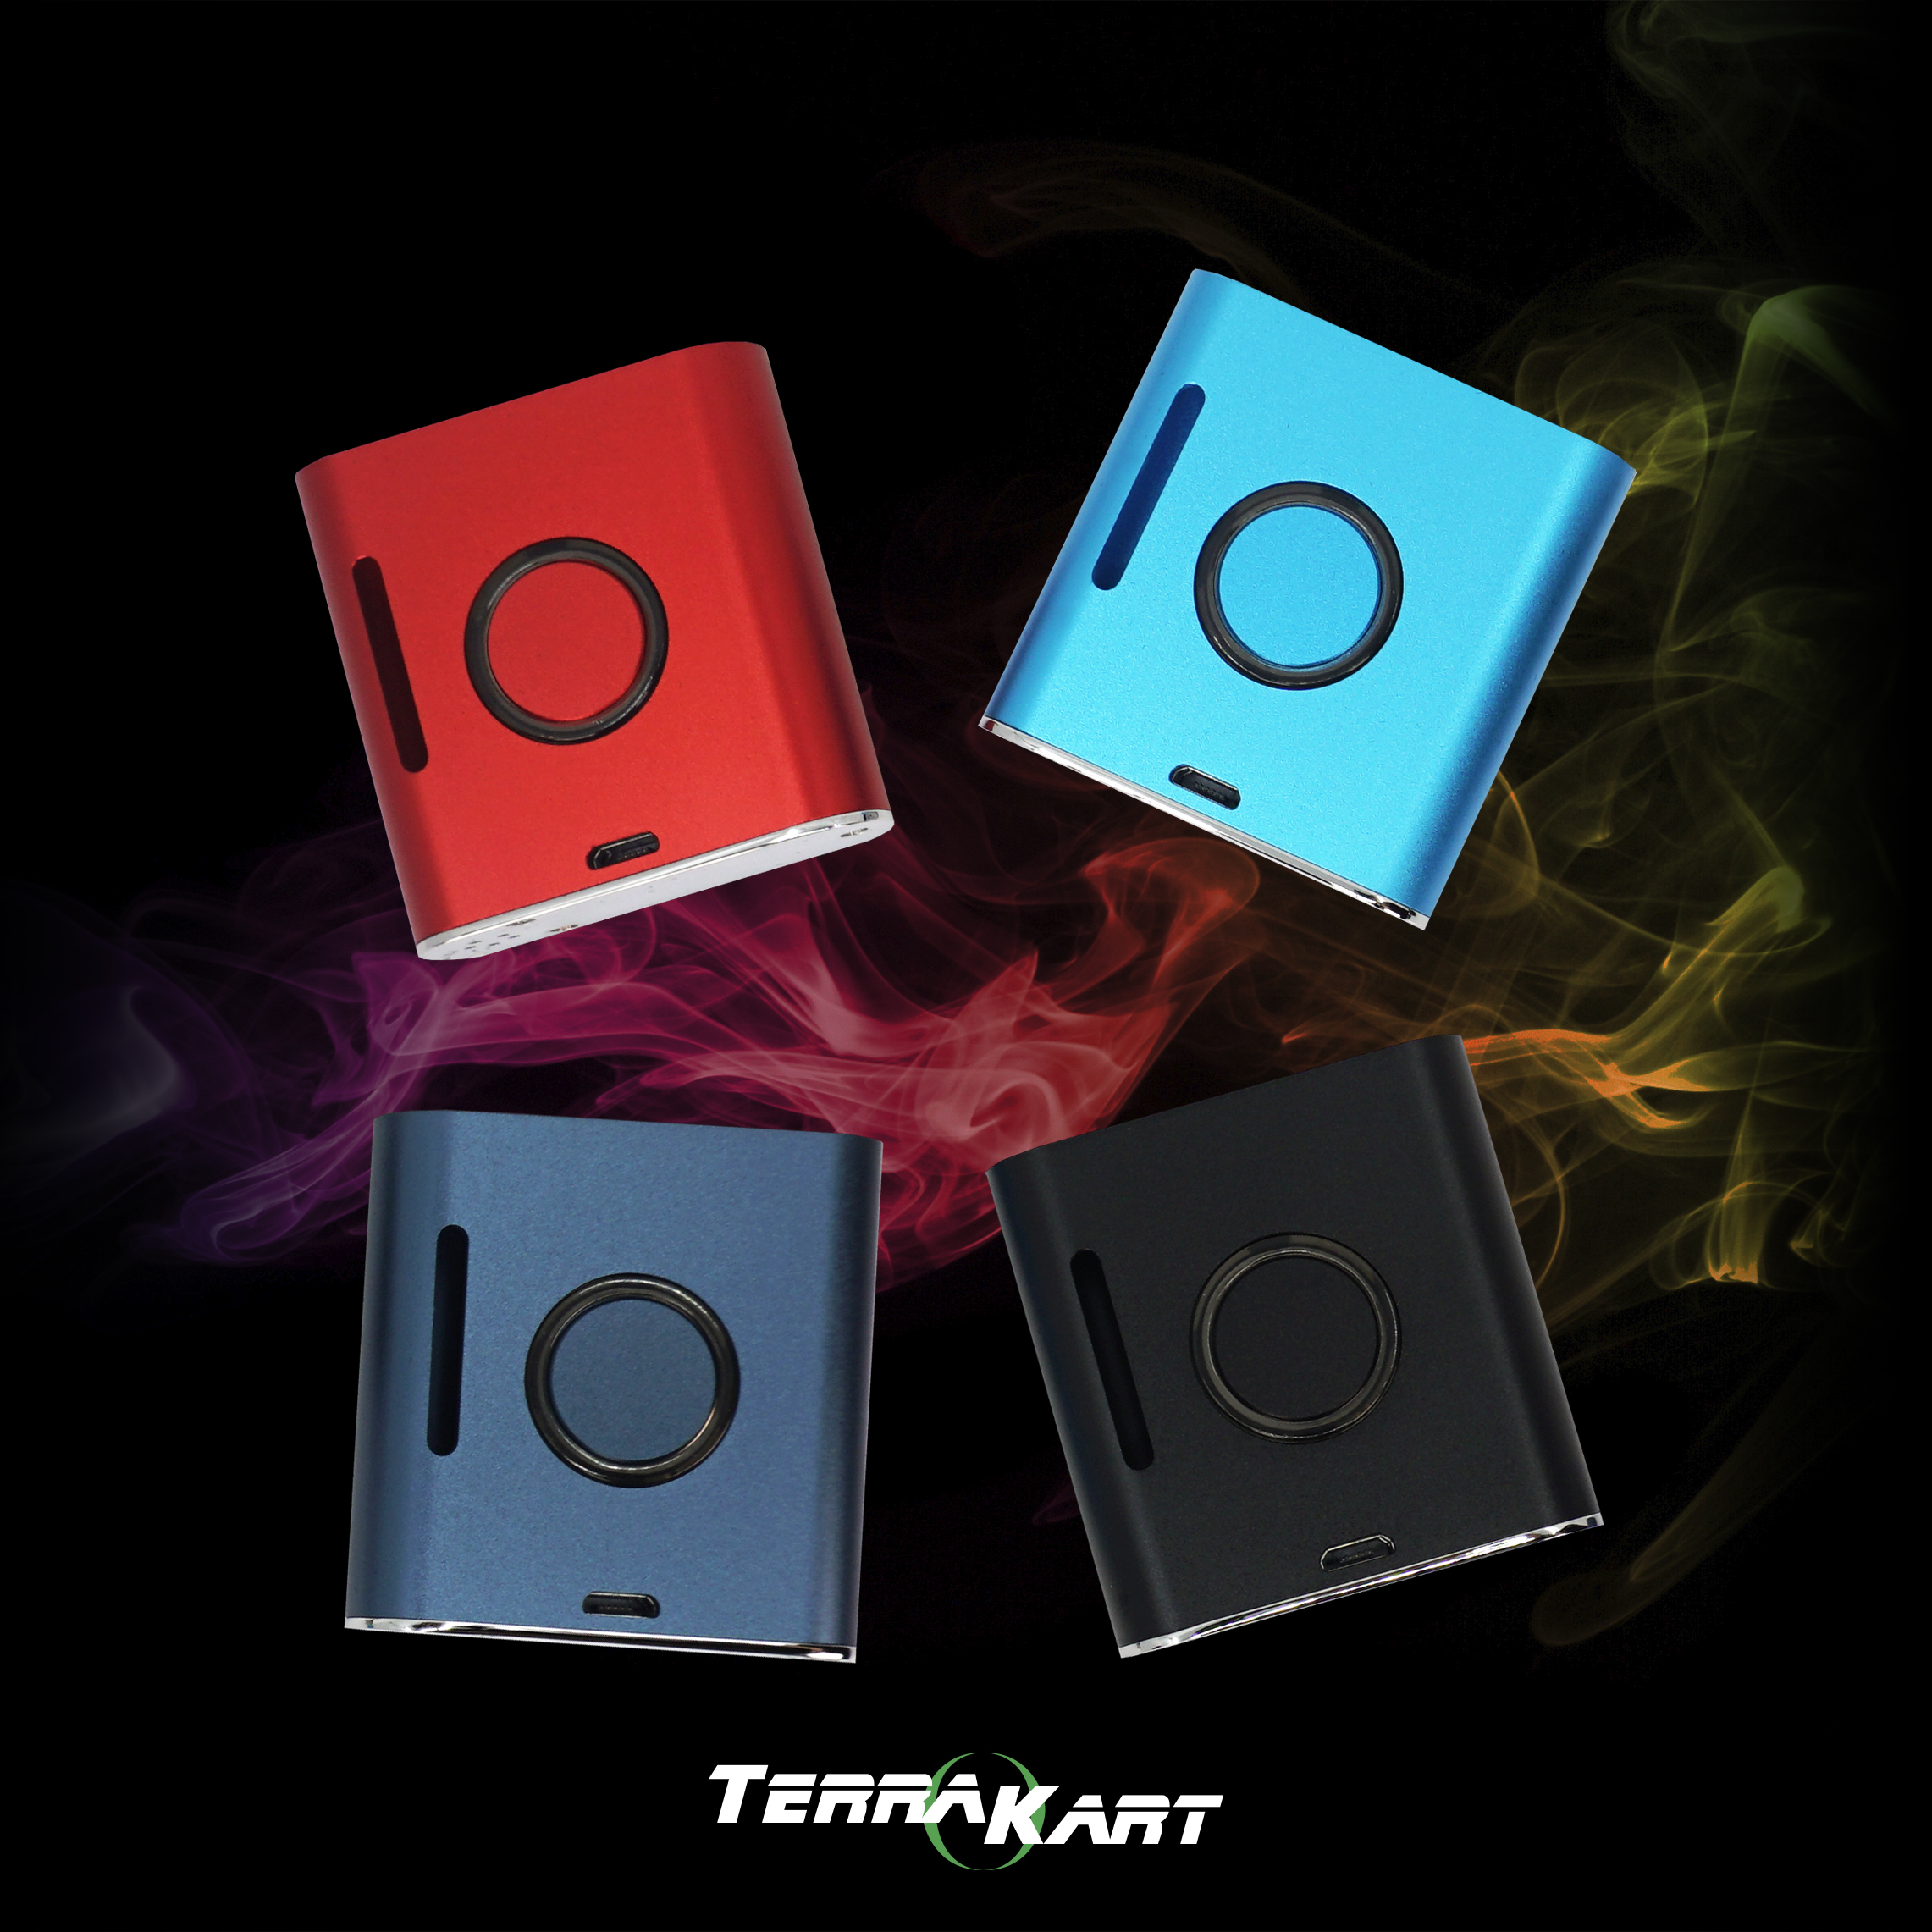 tk mod - push buttonvariable voltage (l, m, h)preheating function 900 mah micro usb charger (1) magnetic connector